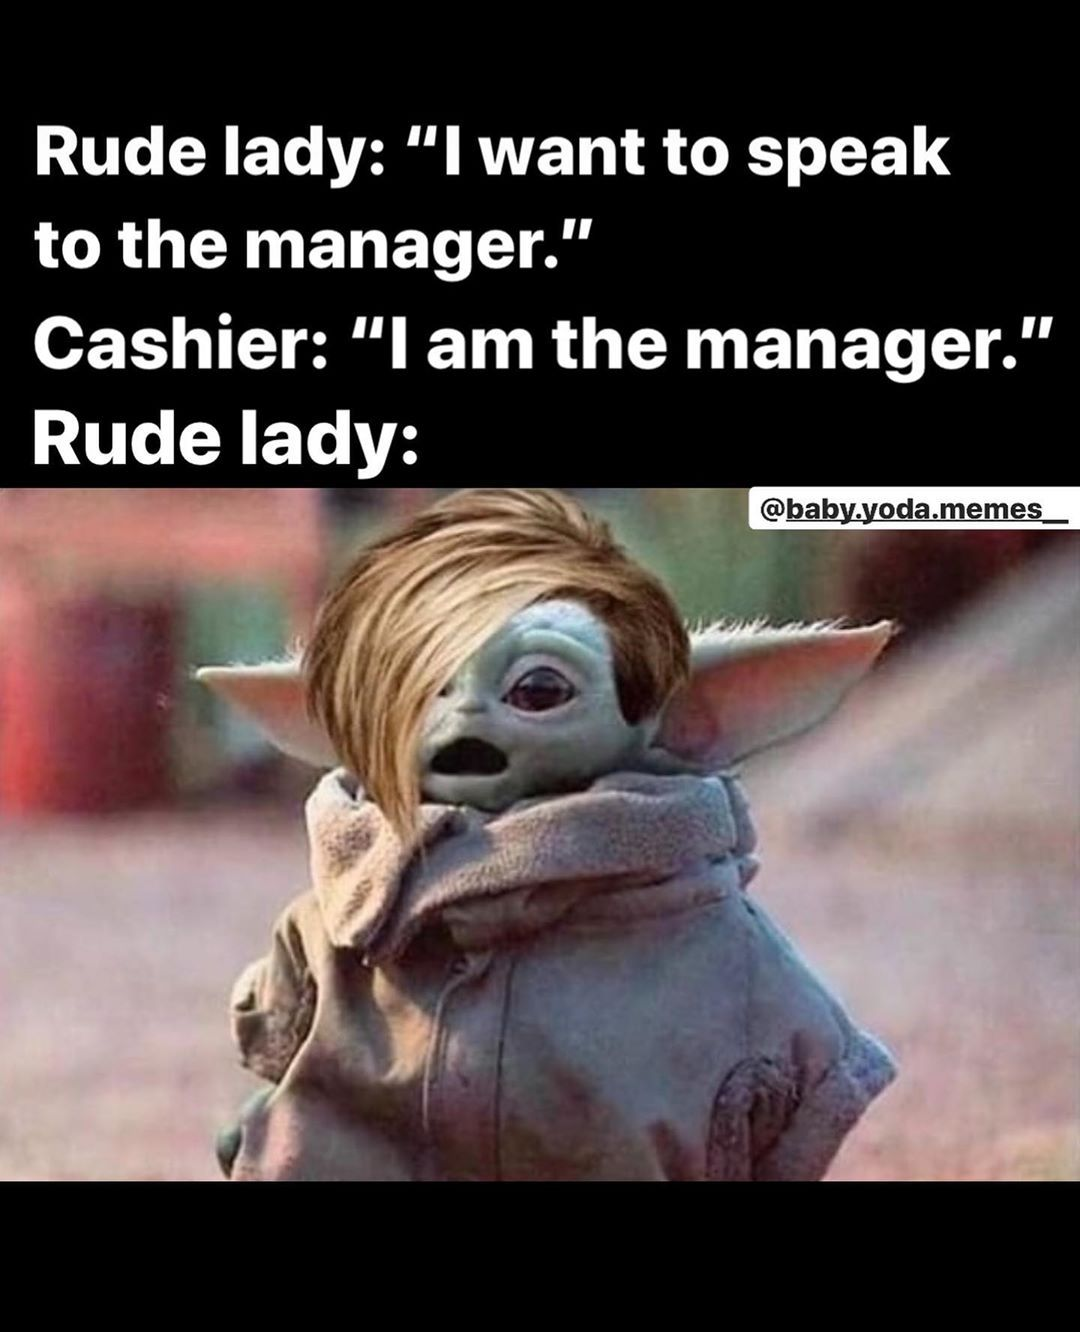 Baby Yoda Memes S Instagram Post The Best Apparel You Can Get To Show Your Love For Karens Everywhere Or To Even Gift To A Kare Yoda Yoda Meme Make Me Laugh